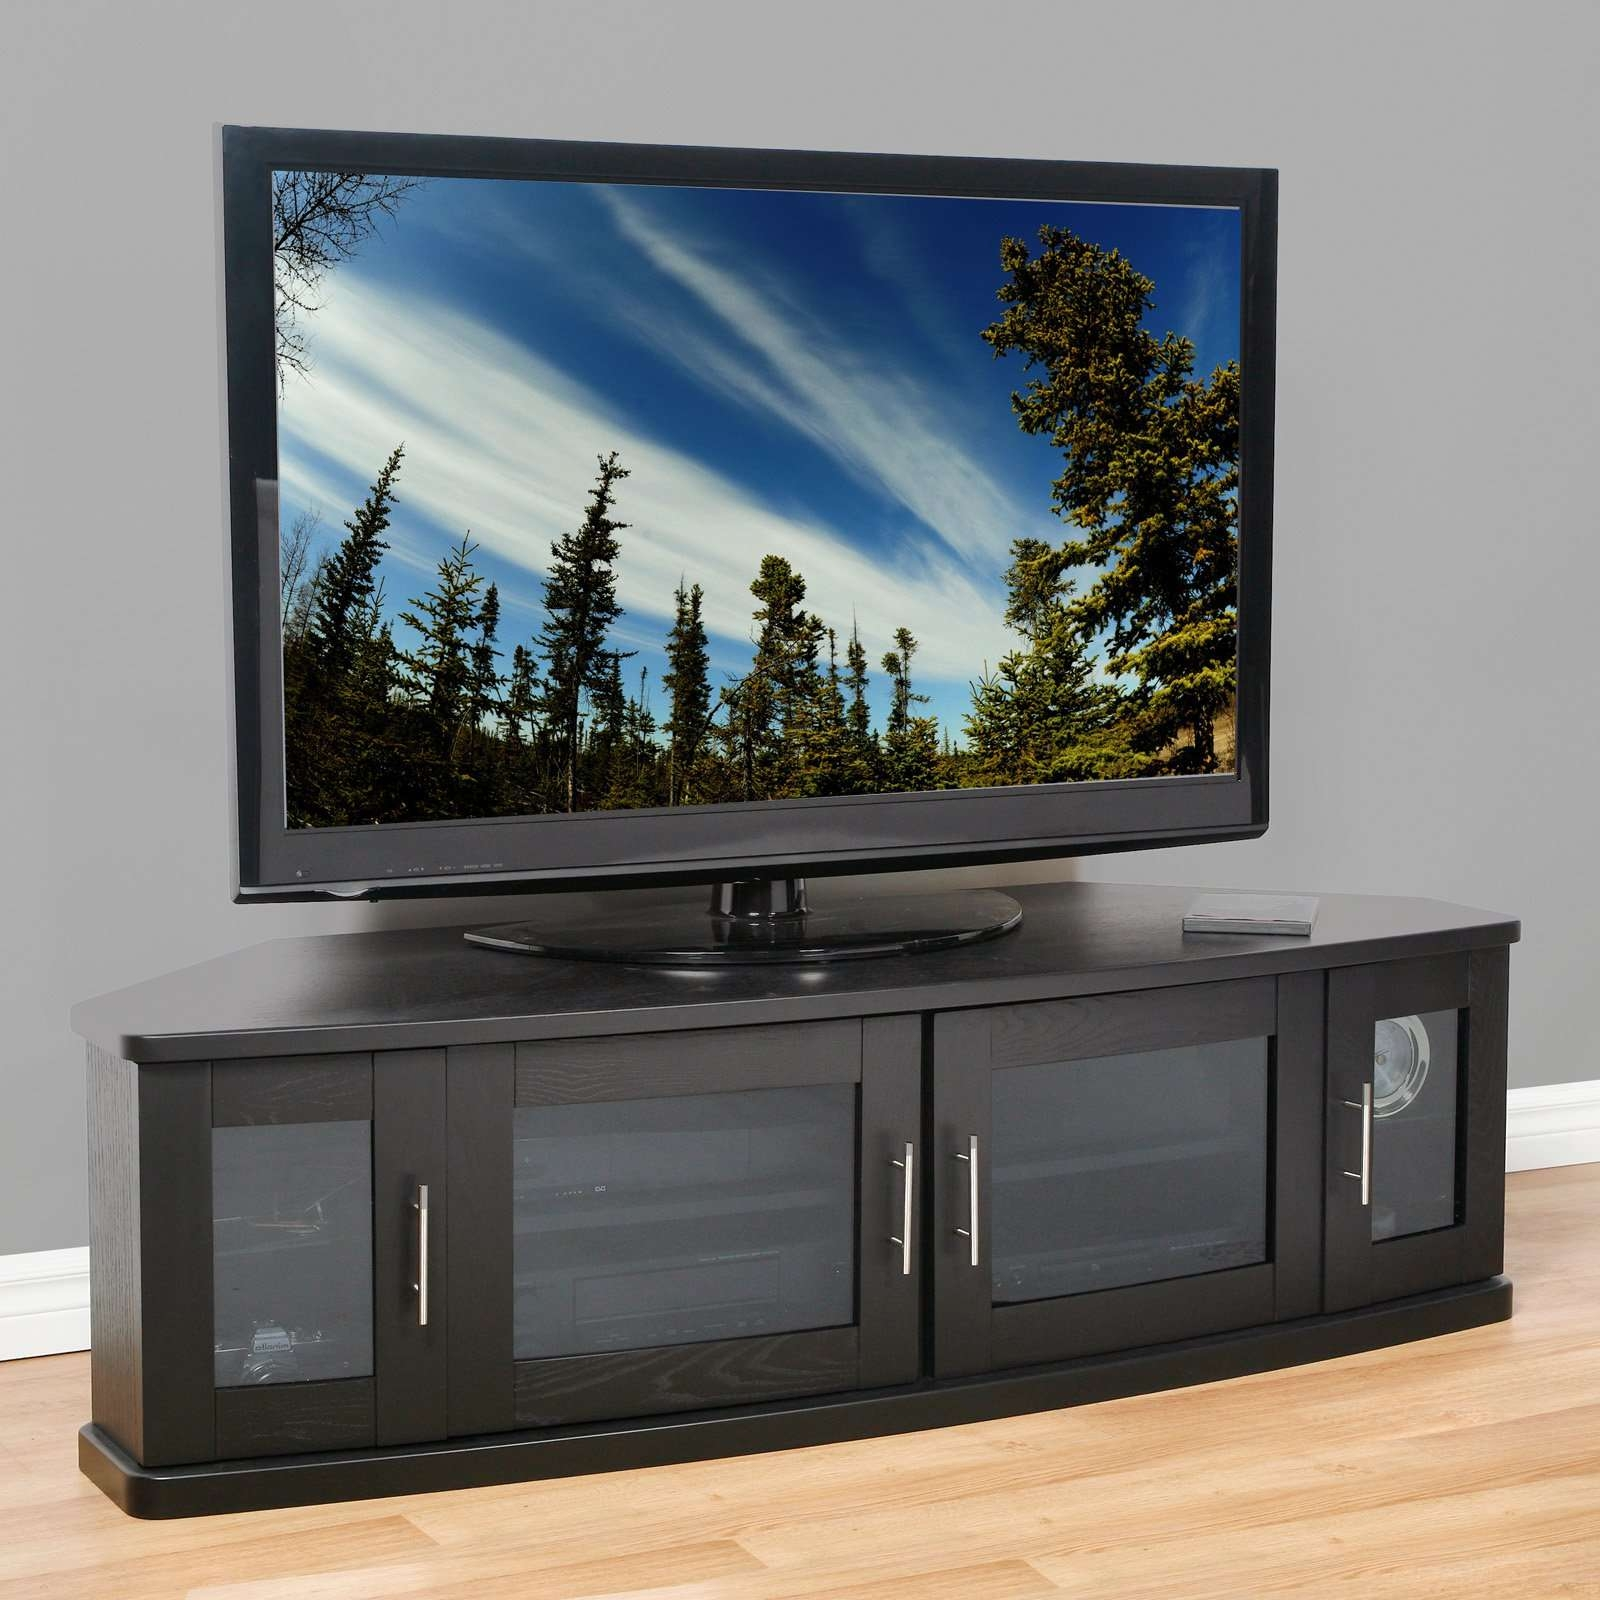 Plateau Newport 62 Inch Corner Tv Stand In Black – Walmart In Modern Tv Stands For 60 Inch Tvs (View 15 of 15)